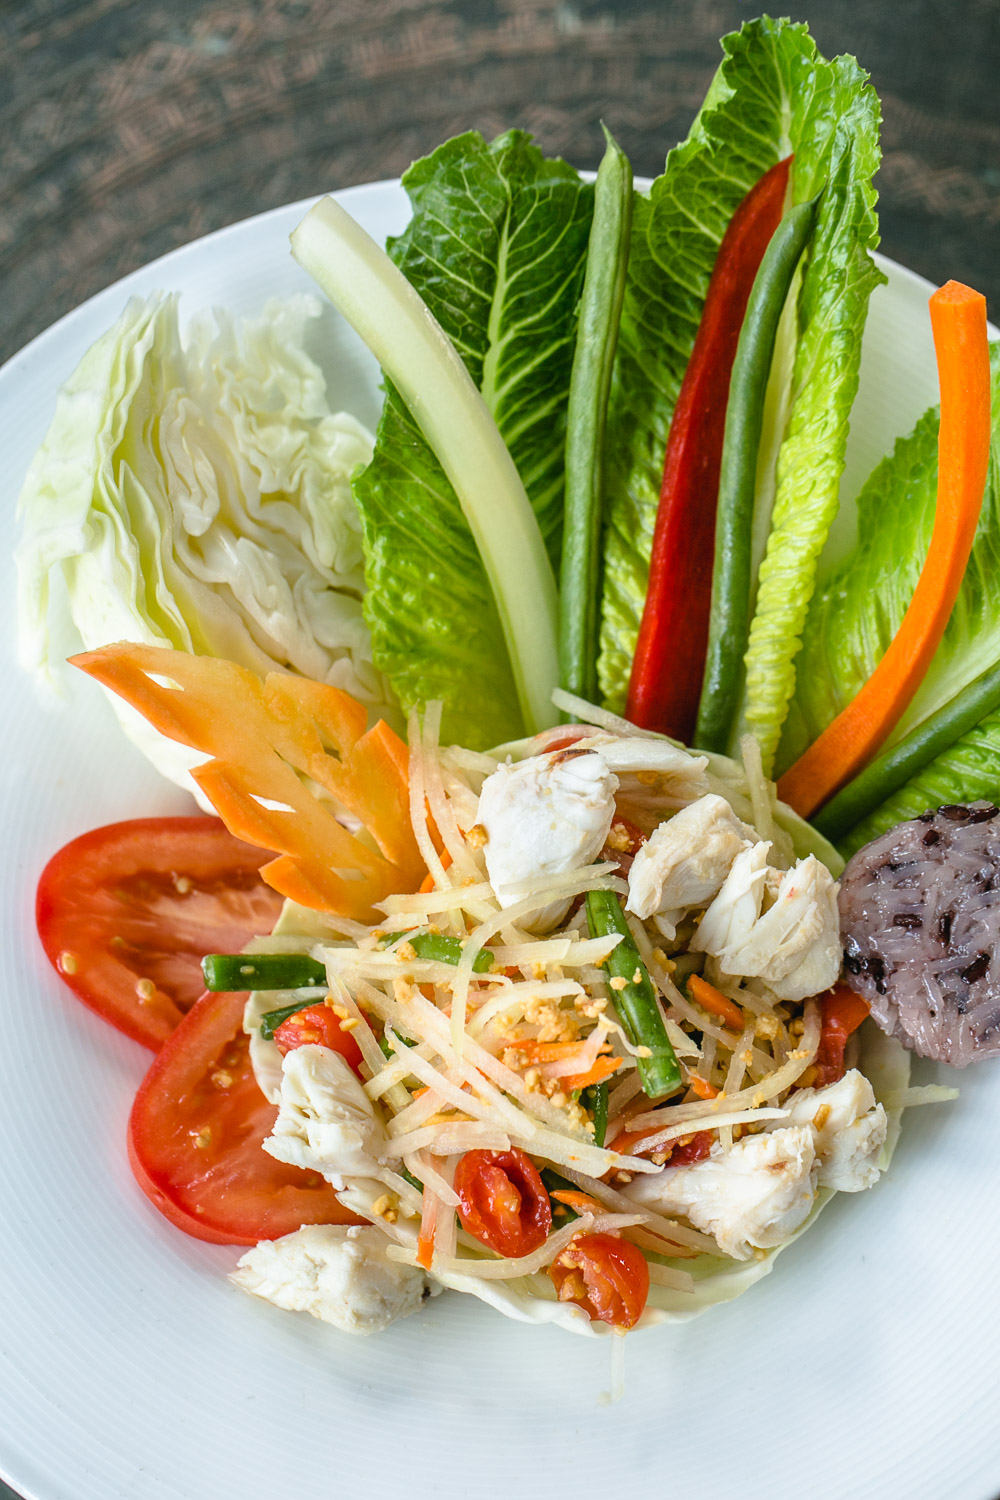 Nan-Thai-Fine-Dining-Chicken-Salad-Erik-Meadows